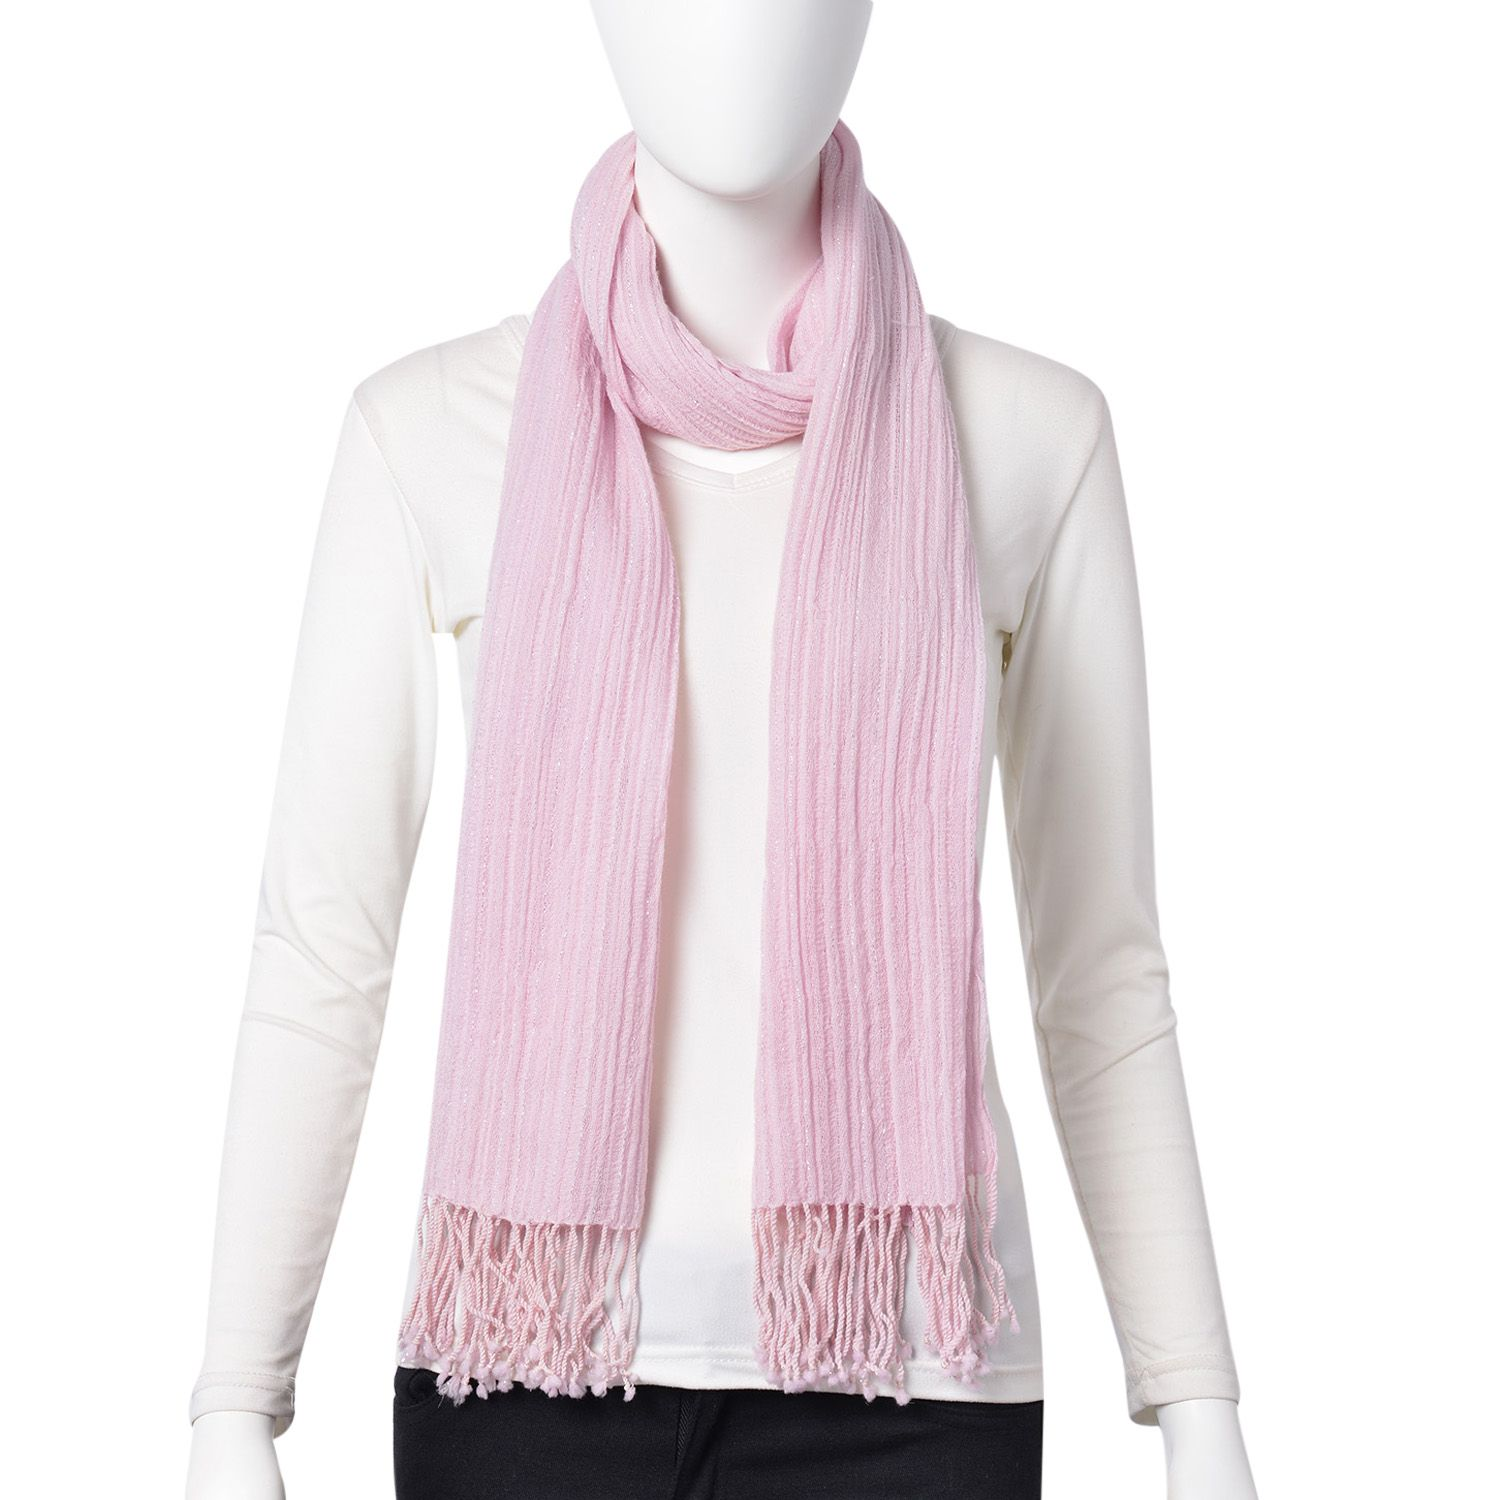 Pink 100% Wool Scarf with Braided Tassles (18x72 in)